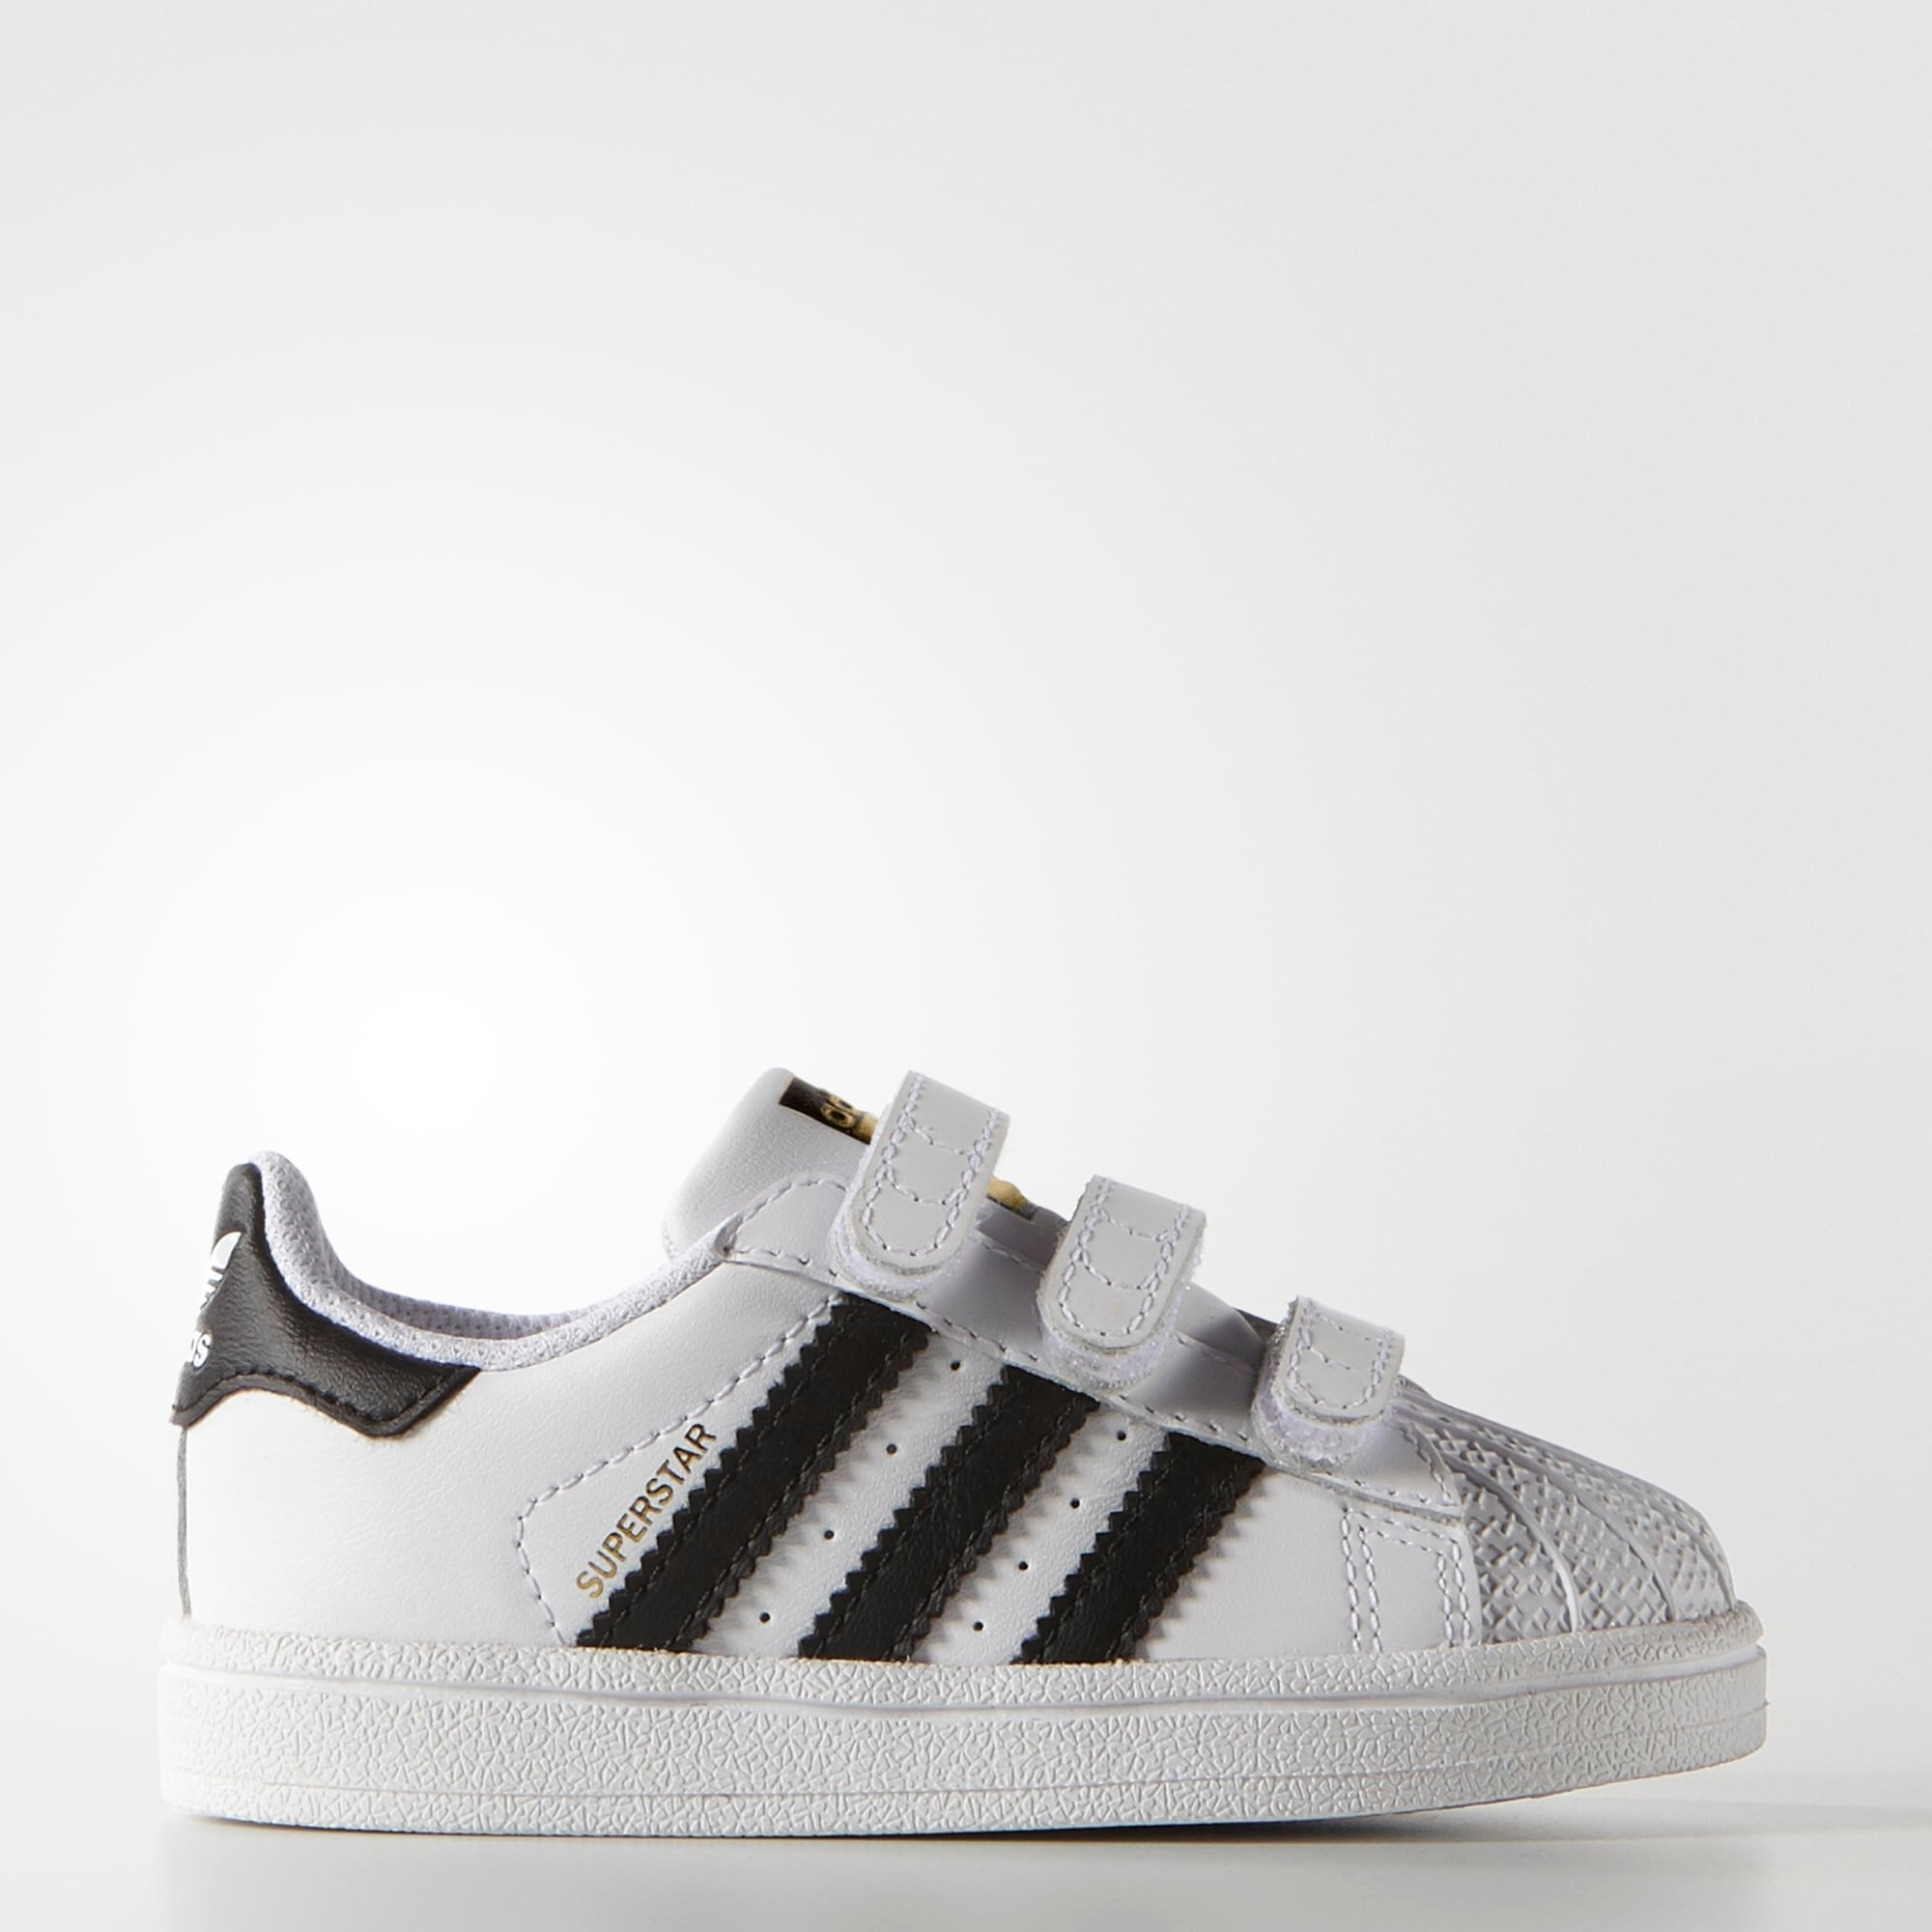 72b172c55d49 Toddler s adidas Superstar Foundation Comfort Strap Shoes Cloud White